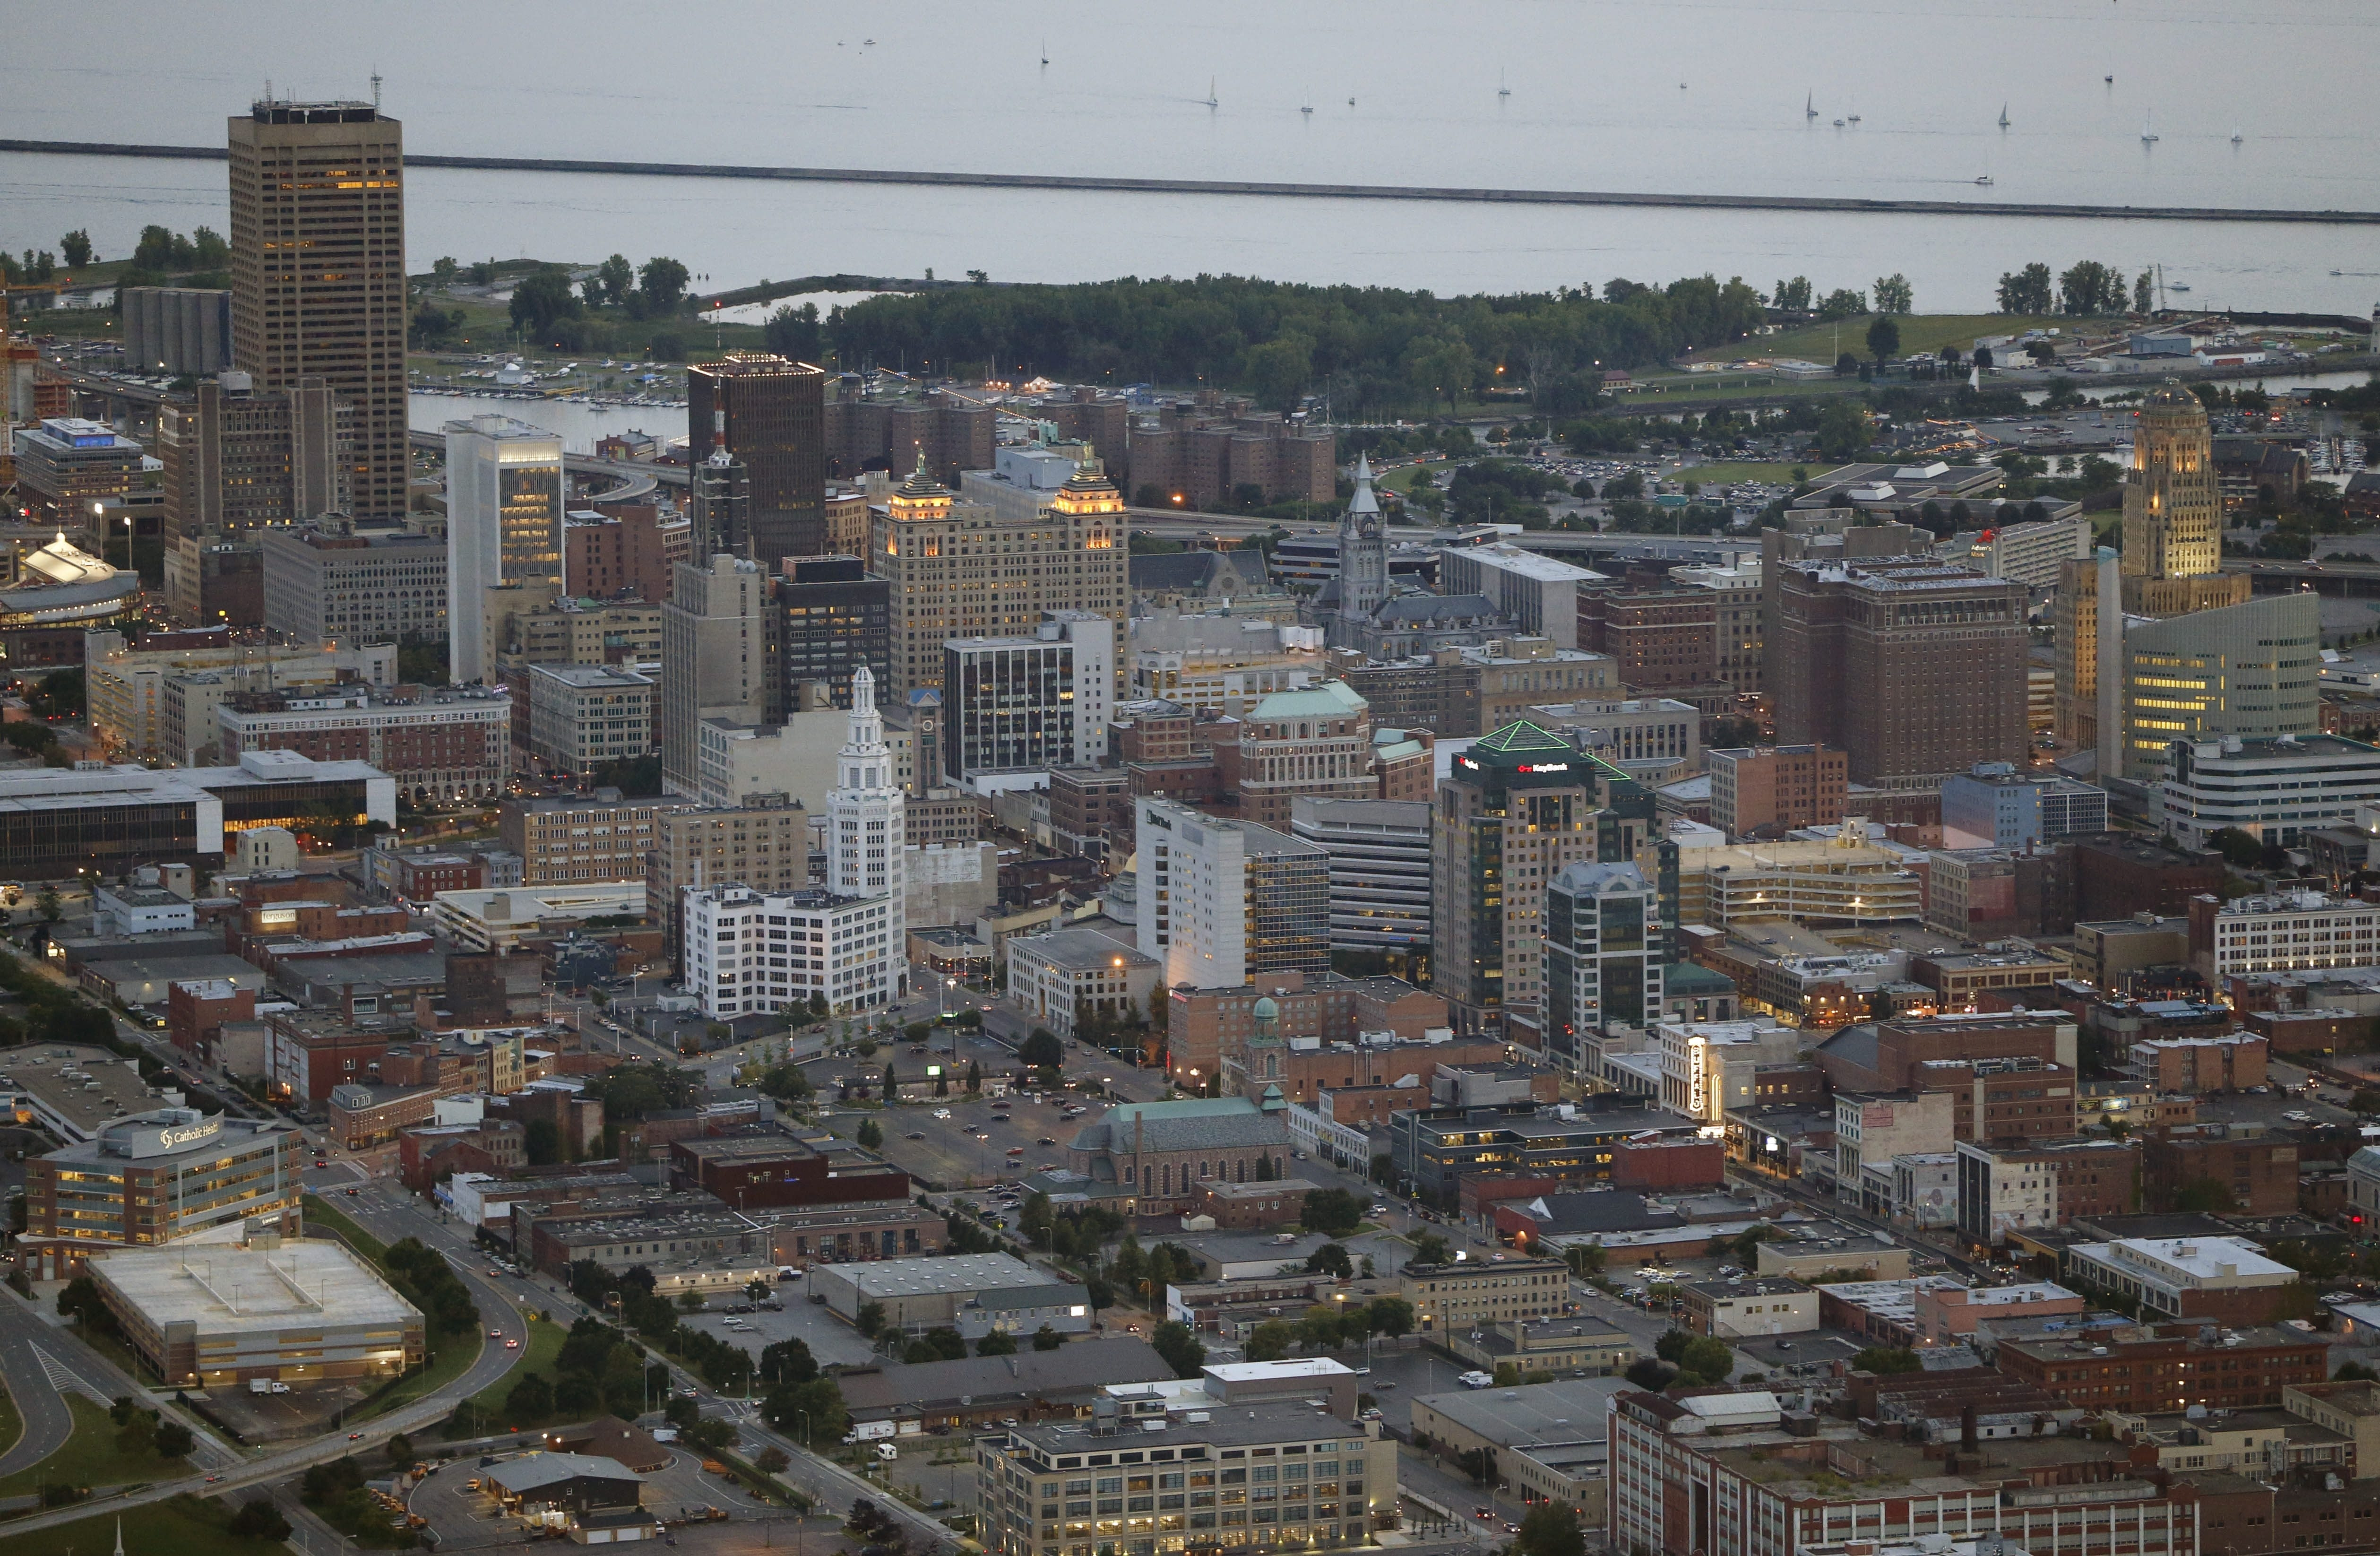 The nearly empty One Seneca Tower, upper left, has resulted in Buffalo's central business district having the highest commercial office vacancy rate in the region at 17.8 percent. The rest of Buffalo had an 11.5 percent vacancy rate.